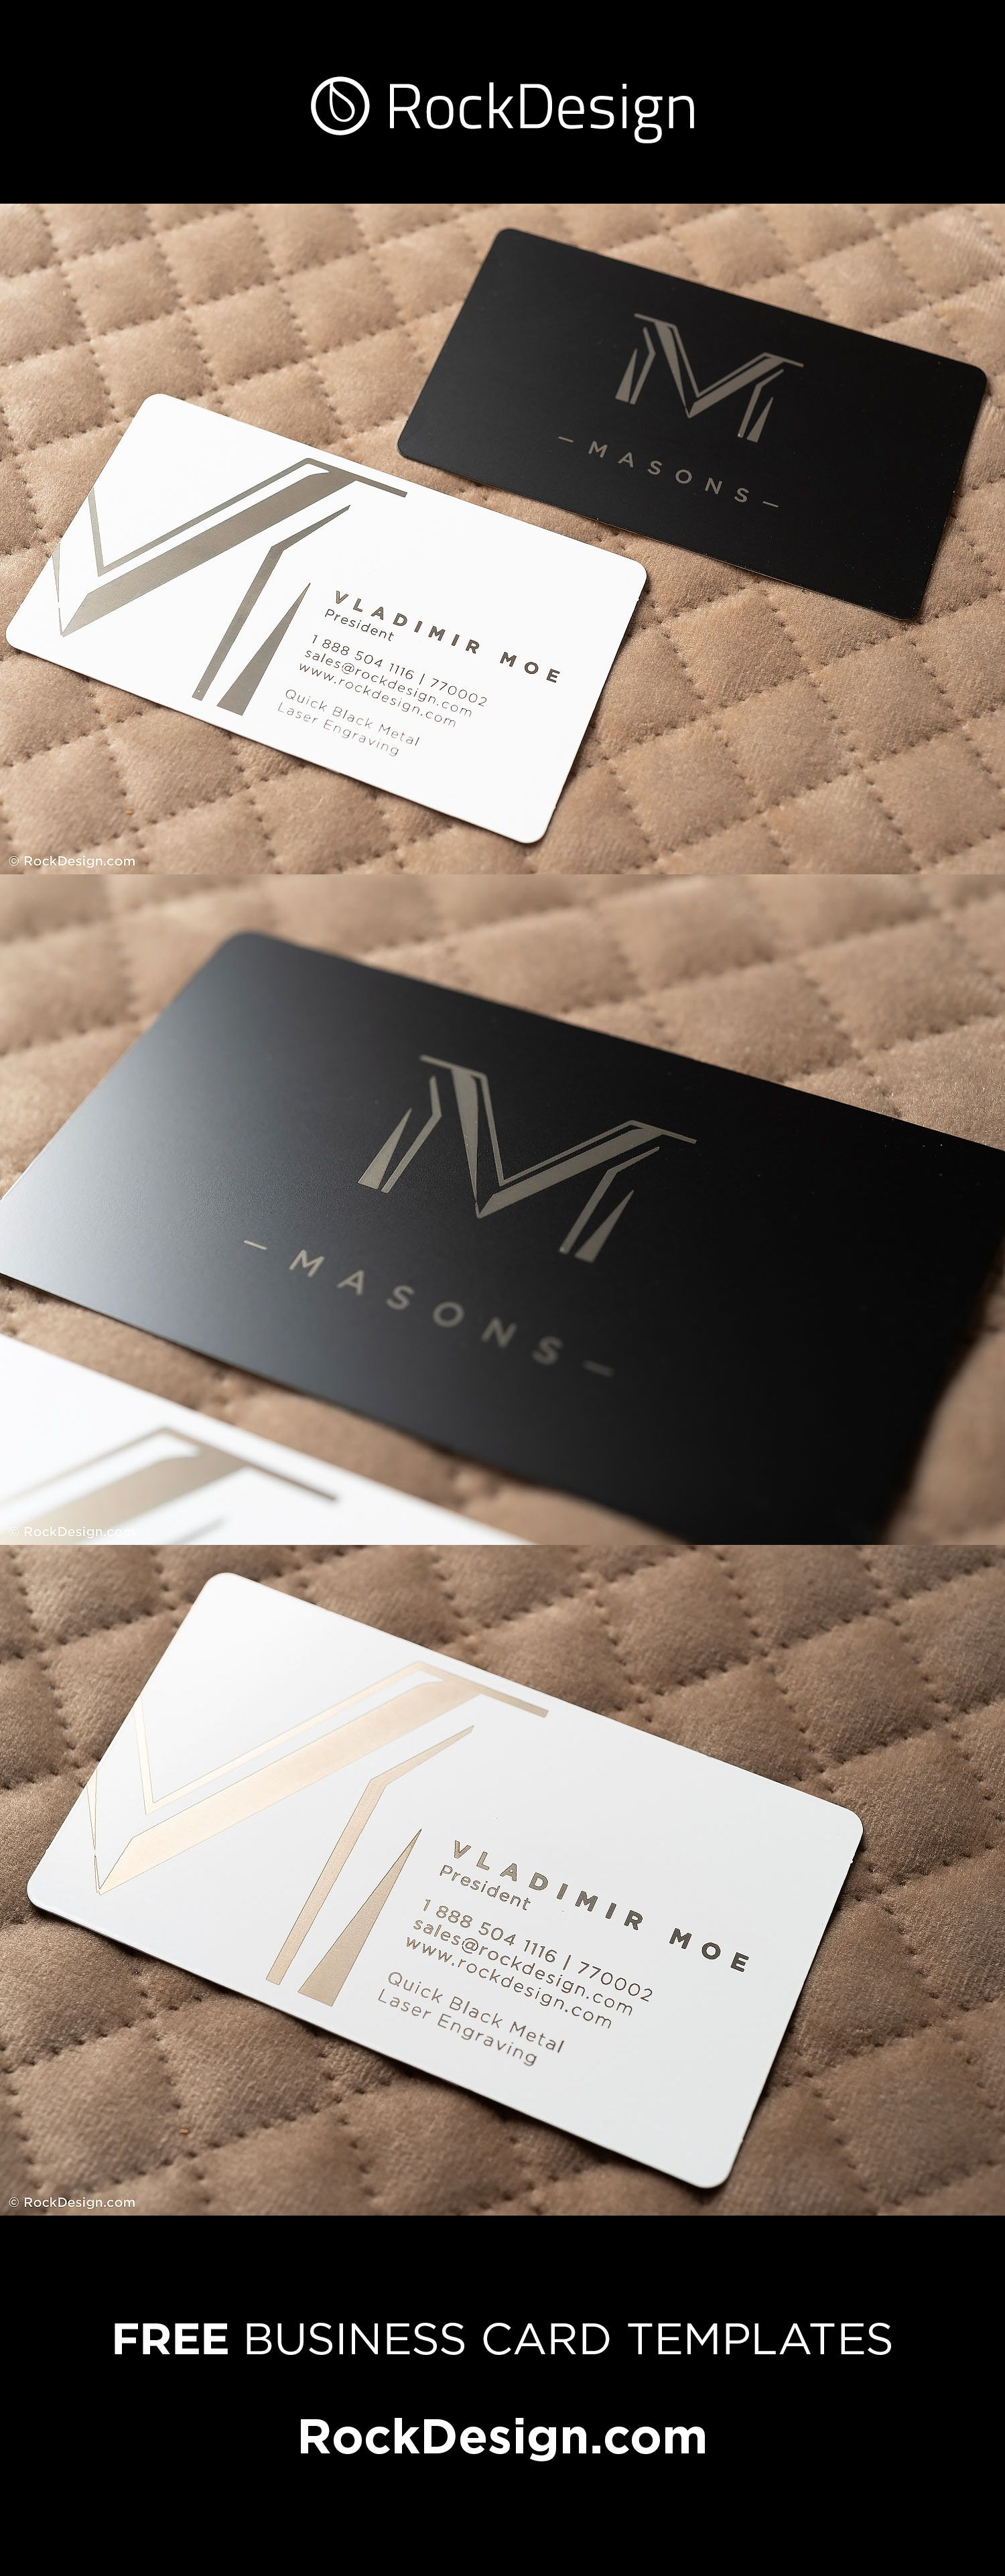 Nice Innovative Stylish Business Card Template Design Masons Metal Business Cards Unique Business Cards Stylish Business Cards